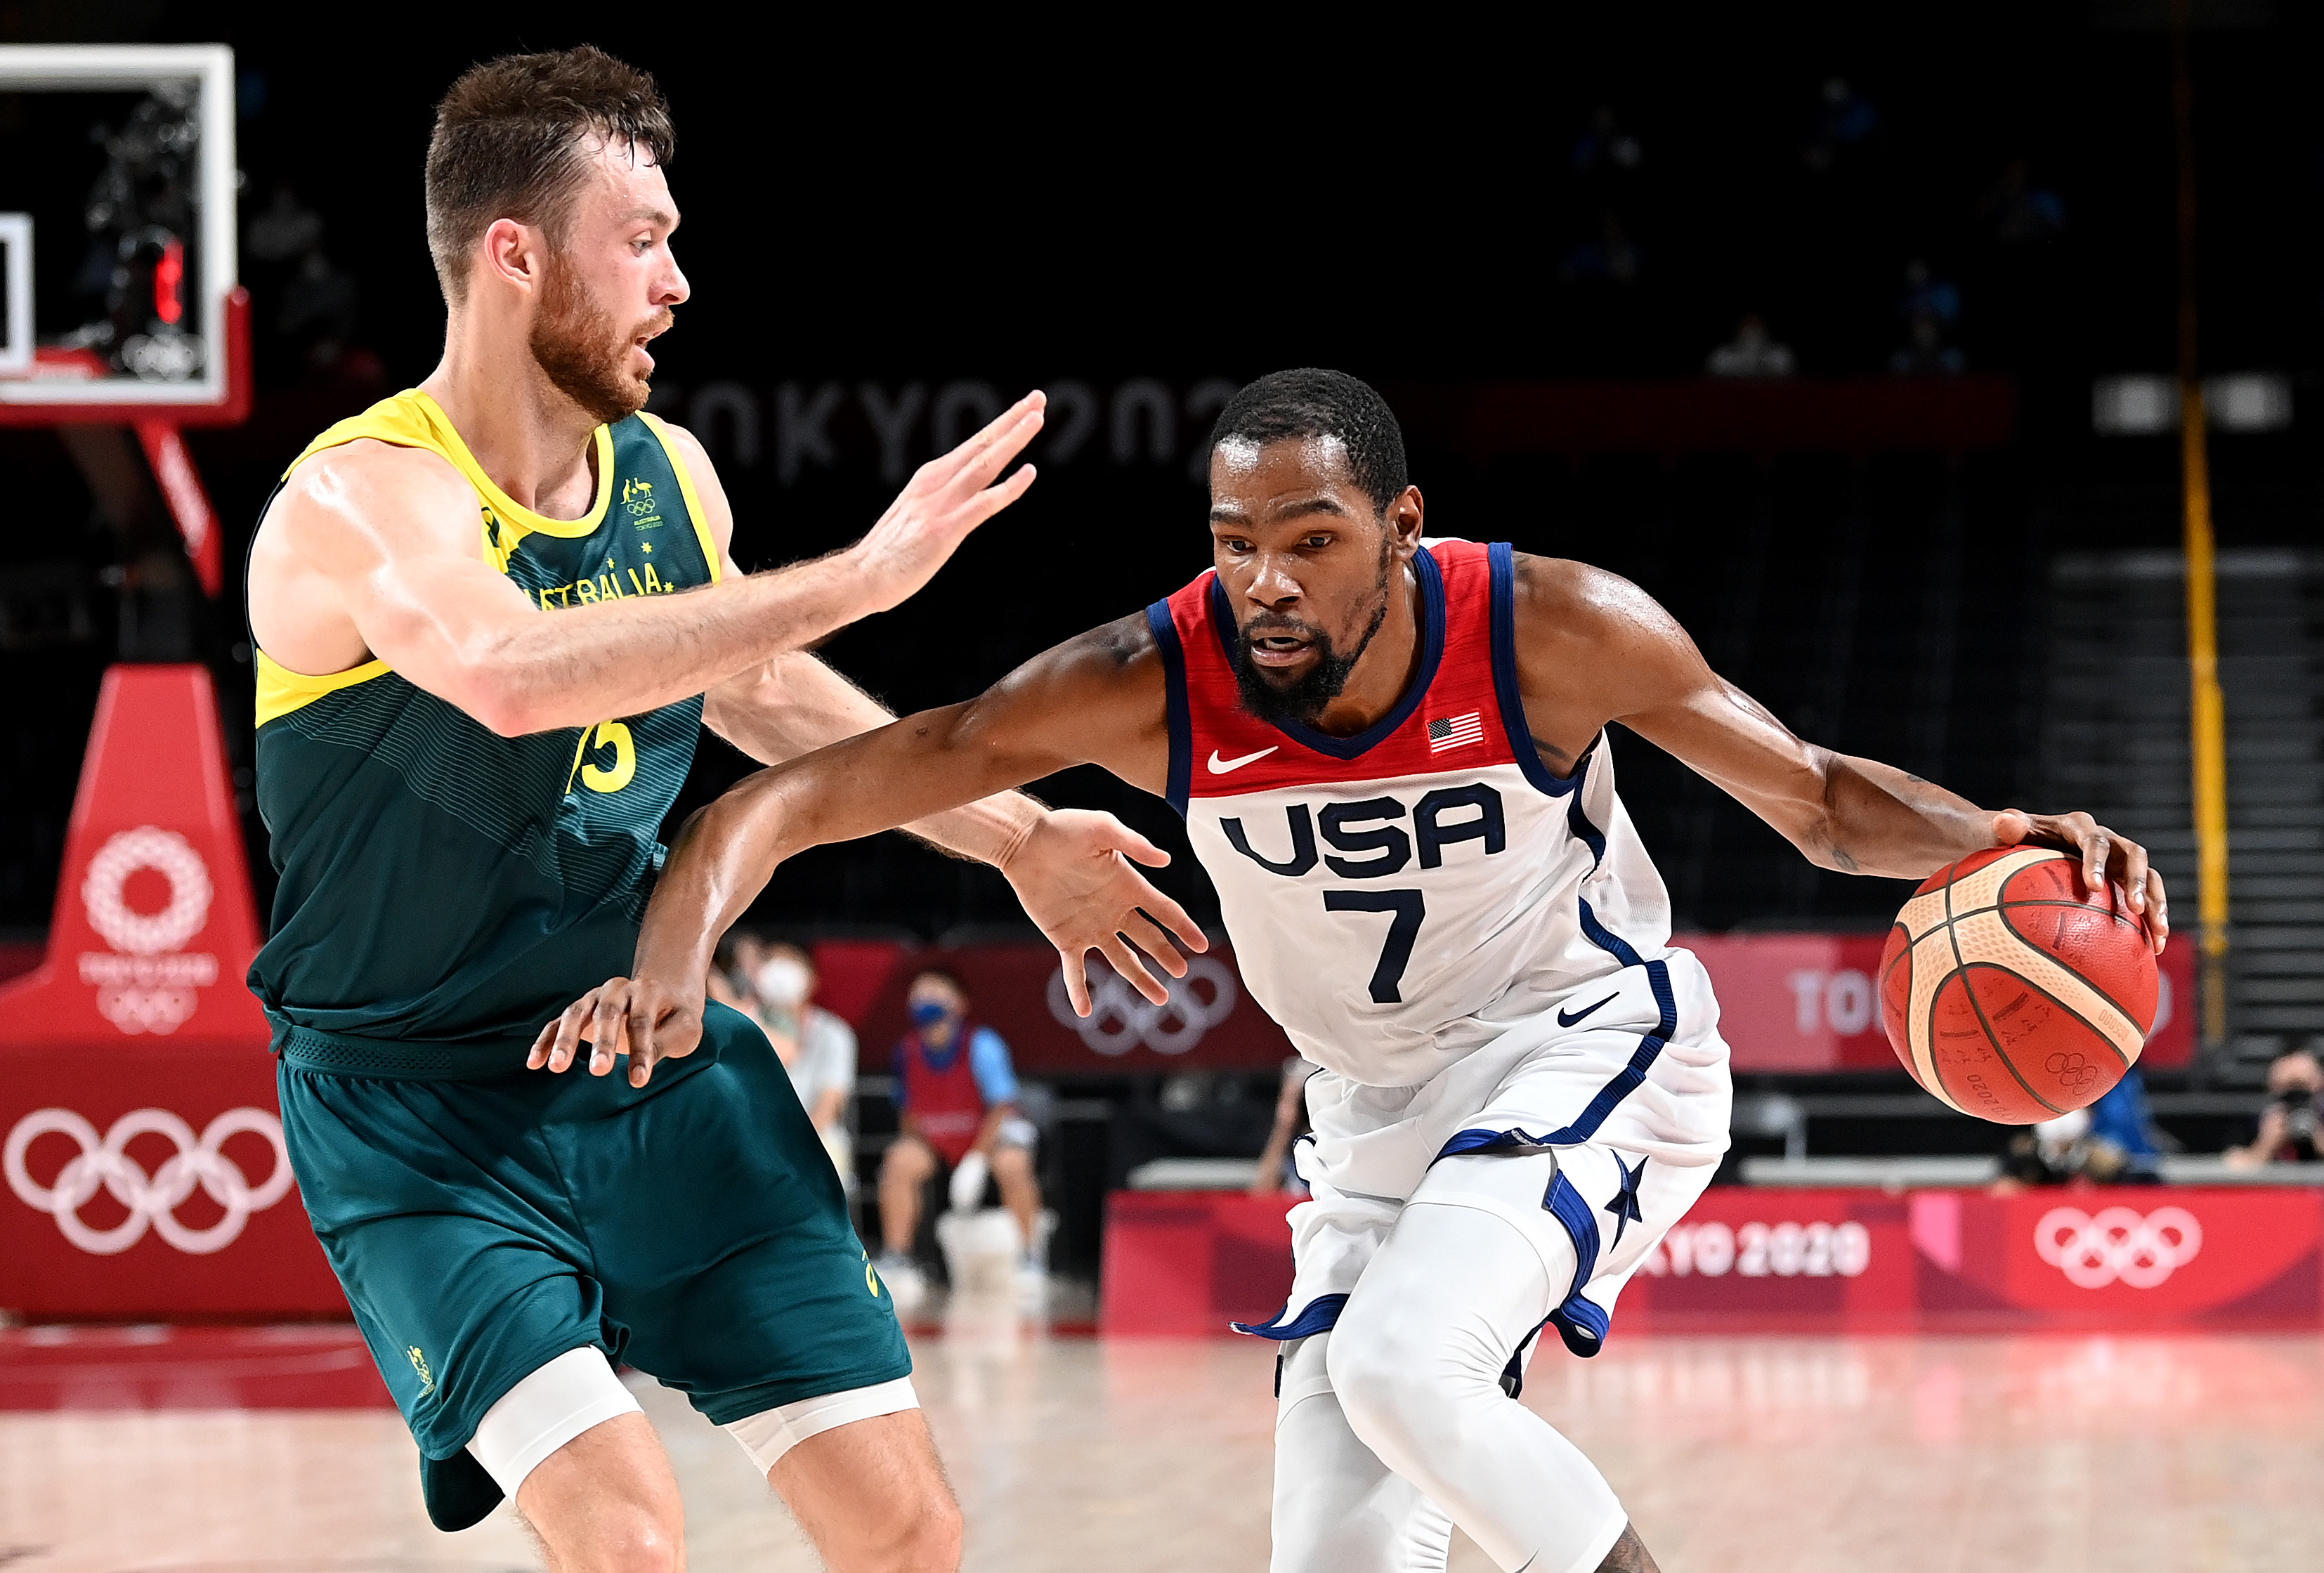 Kevin Durant of the USA takes on the defence of Nic Kay of Australia during the Basketball semi final match between Australia and the USA on day thirteen of the Tokyo 2020 Olympic Games at Saitama Super Arena on August 05, 2021 in Saitama, Japan.